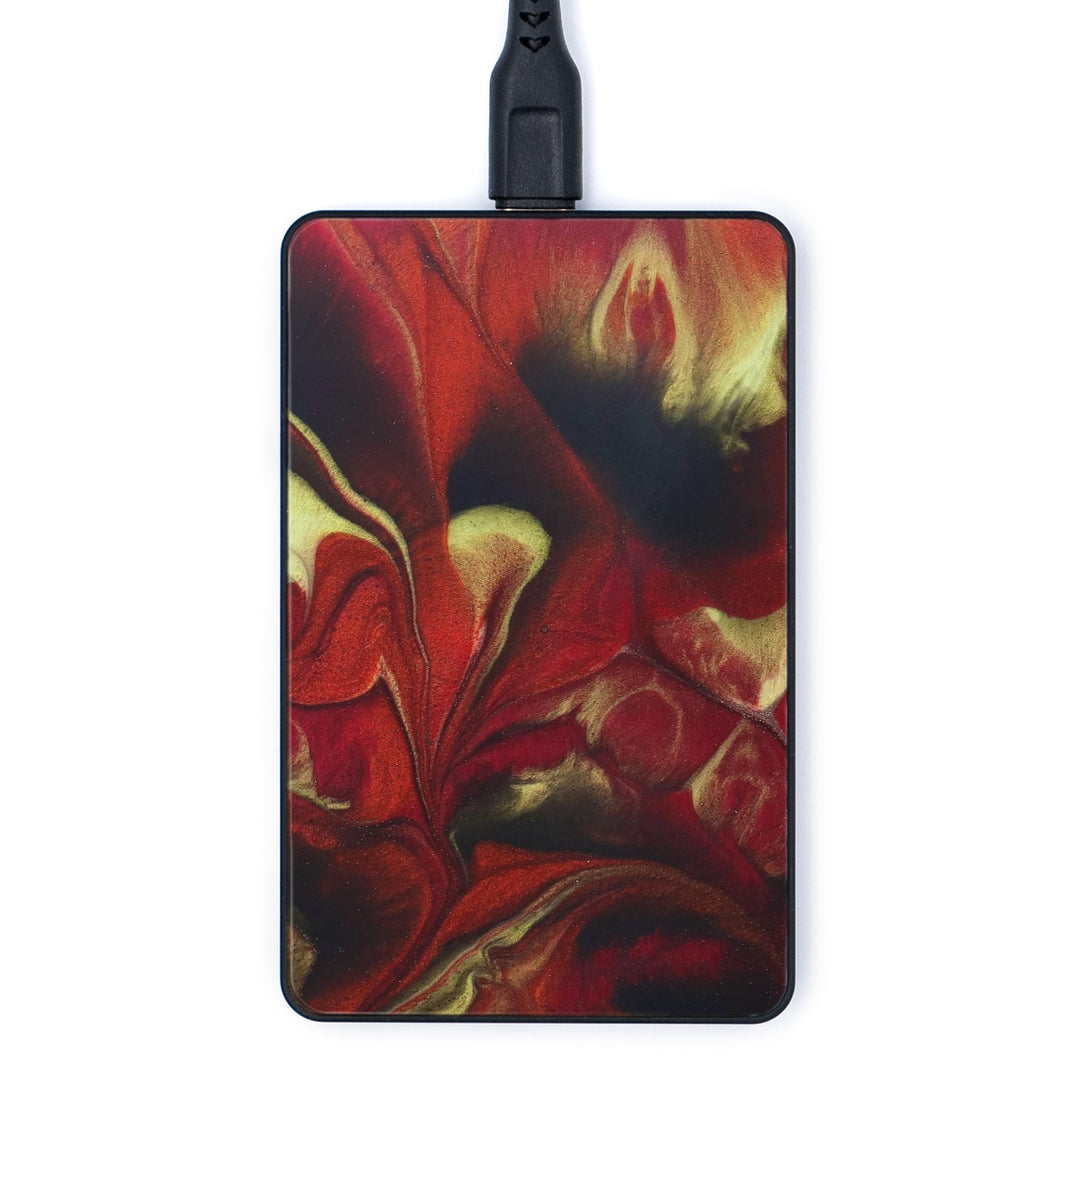 Thin Wireless Charger - Bobbette (Dark Red, 345807)